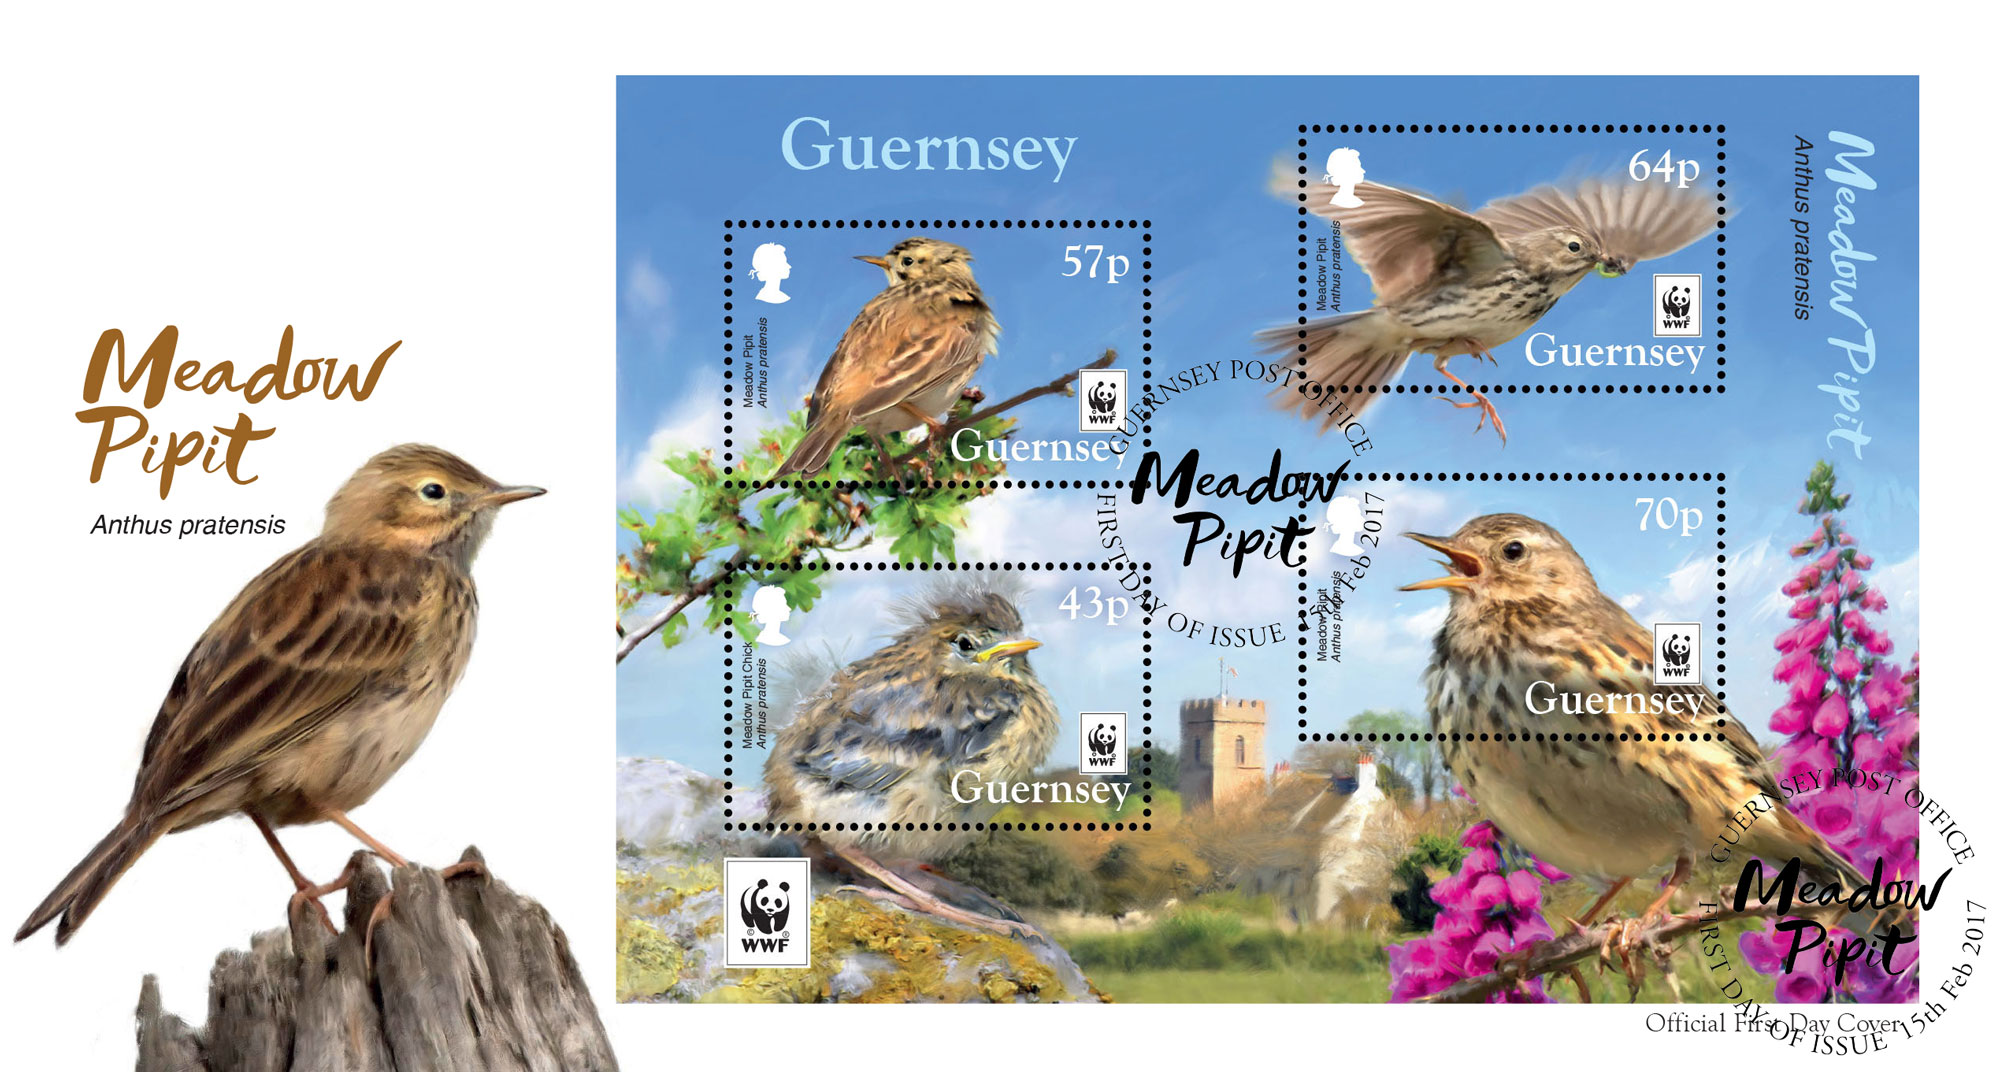 2017 WWFMeadow Pipit FDC with sheet